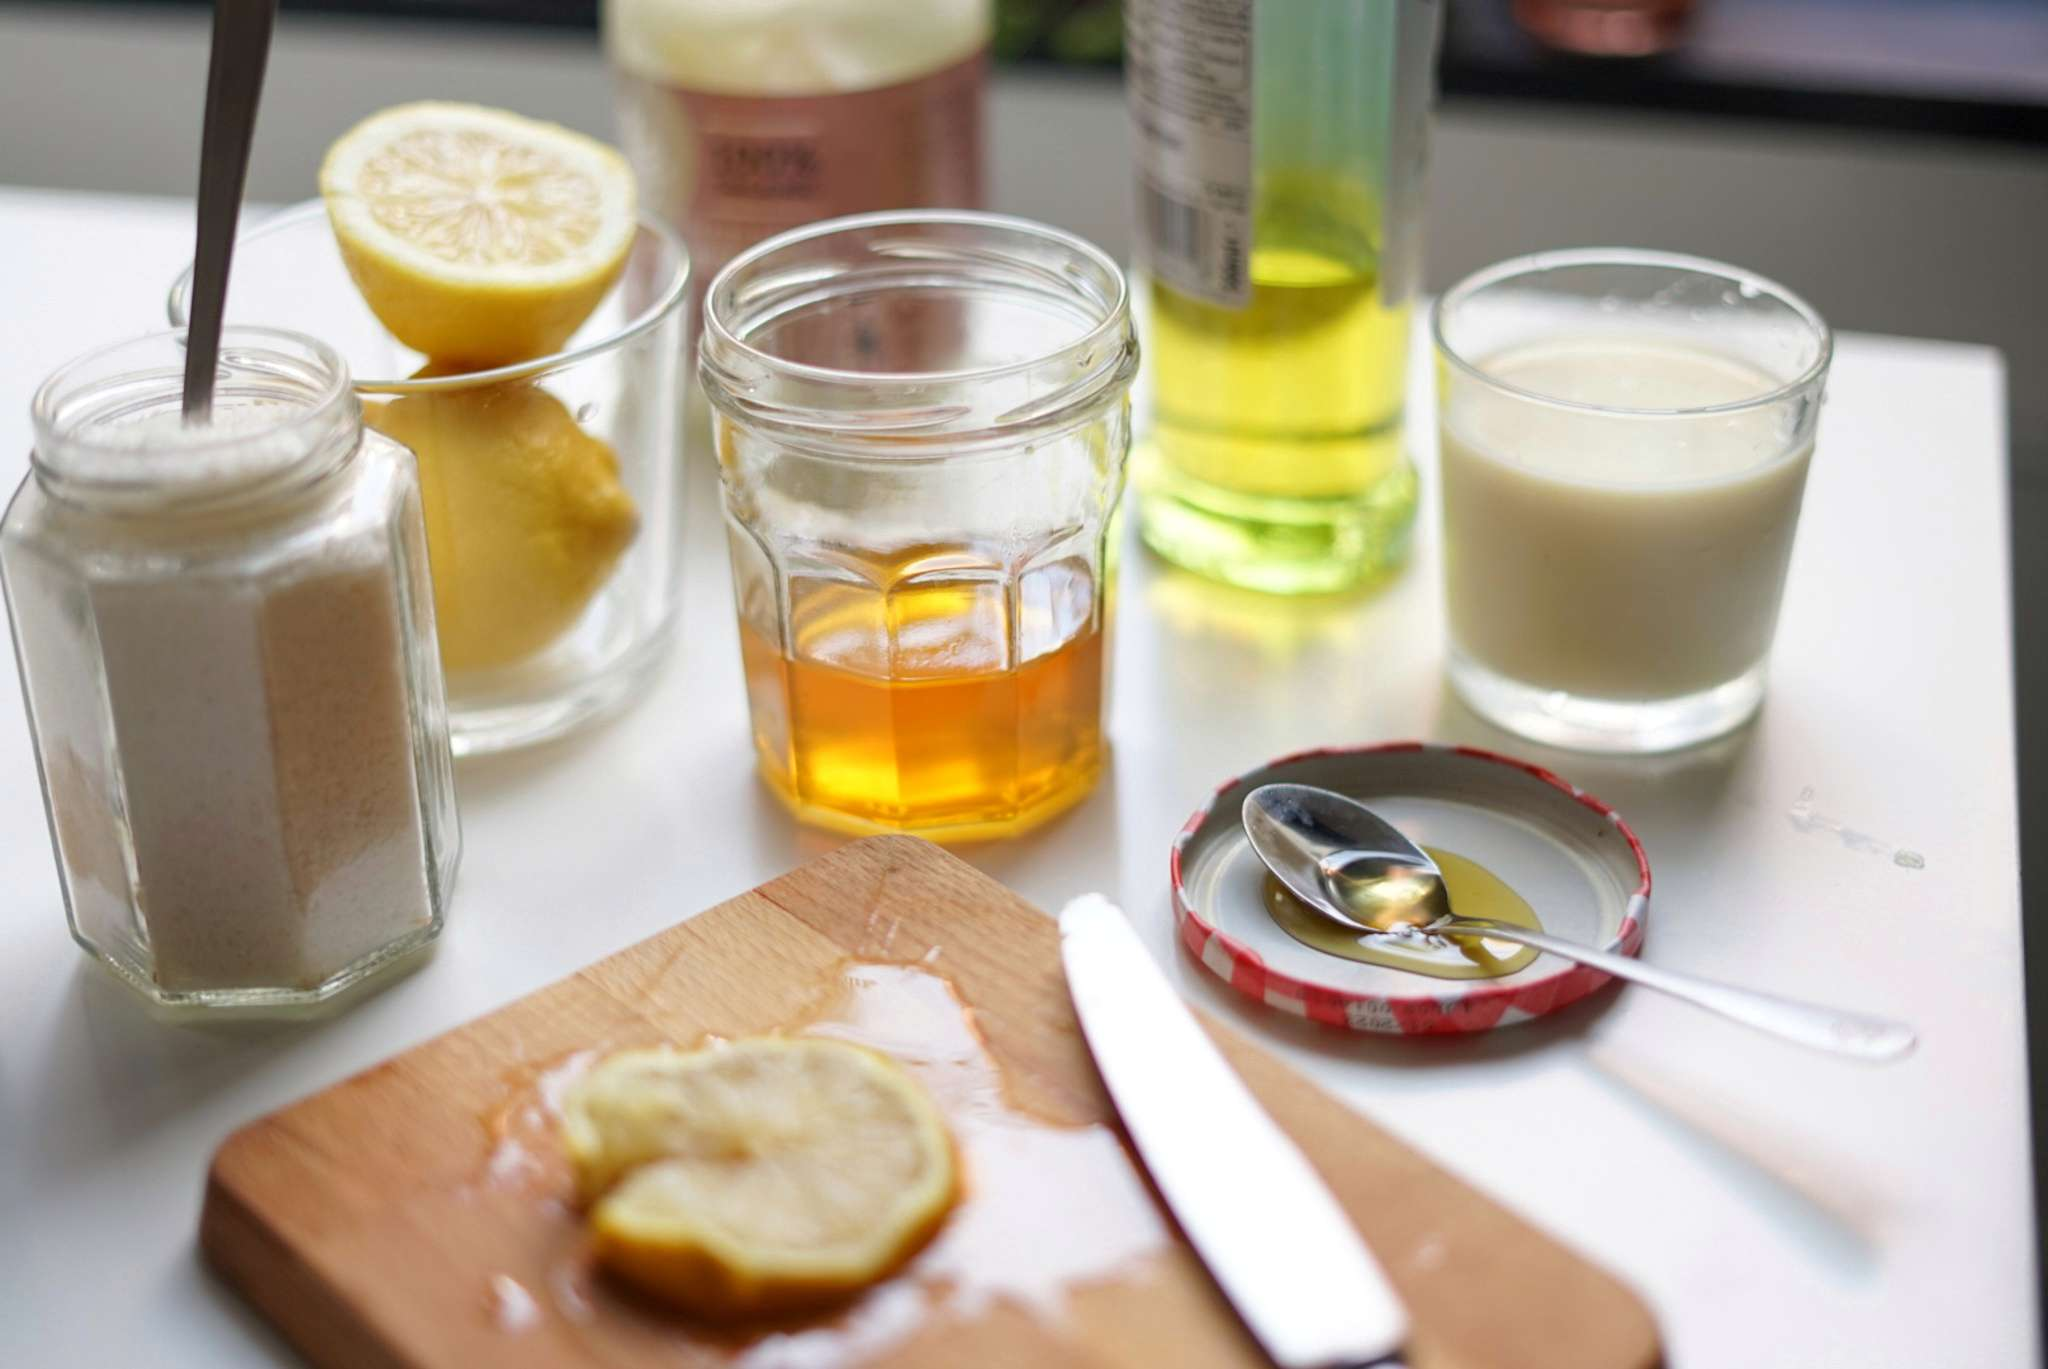 honey, cut lemons, milk, and ground almonds on table for natural beauty treatment